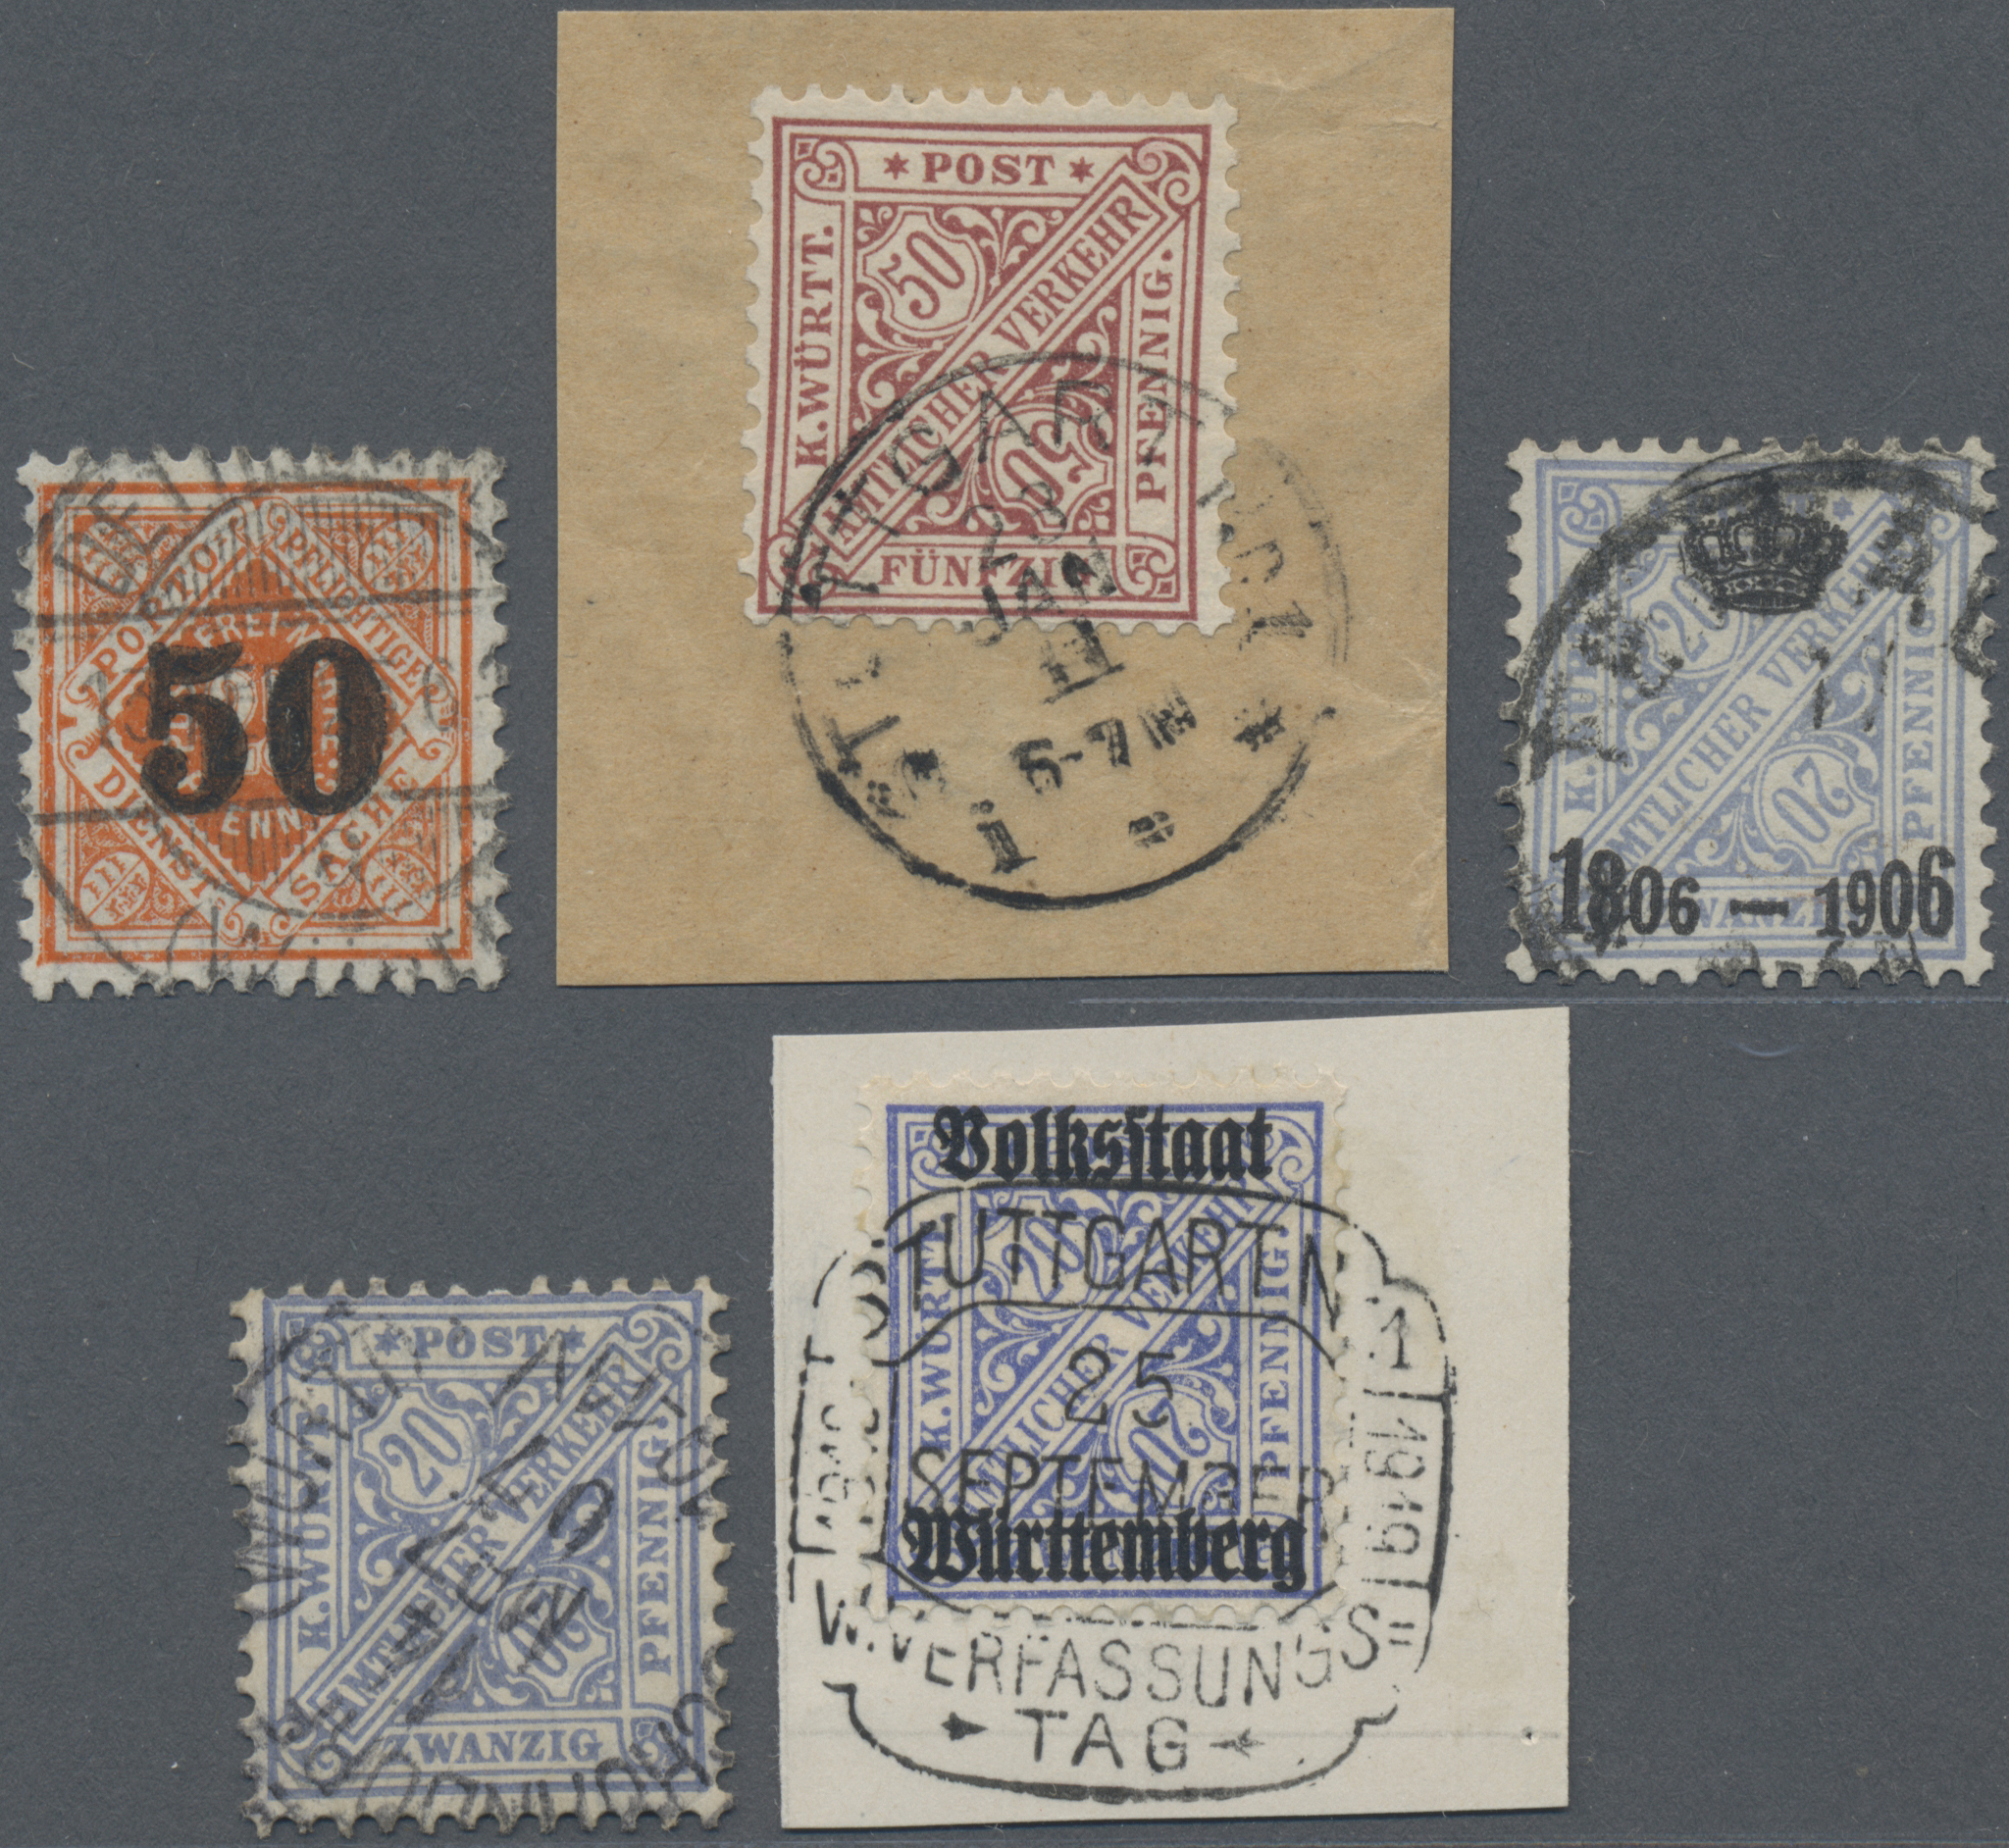 Lot 36330 - Württemberg - Marken und Briefe  -  Auktionshaus Christoph Gärtner GmbH & Co. KG Sale #44 Collections Germany